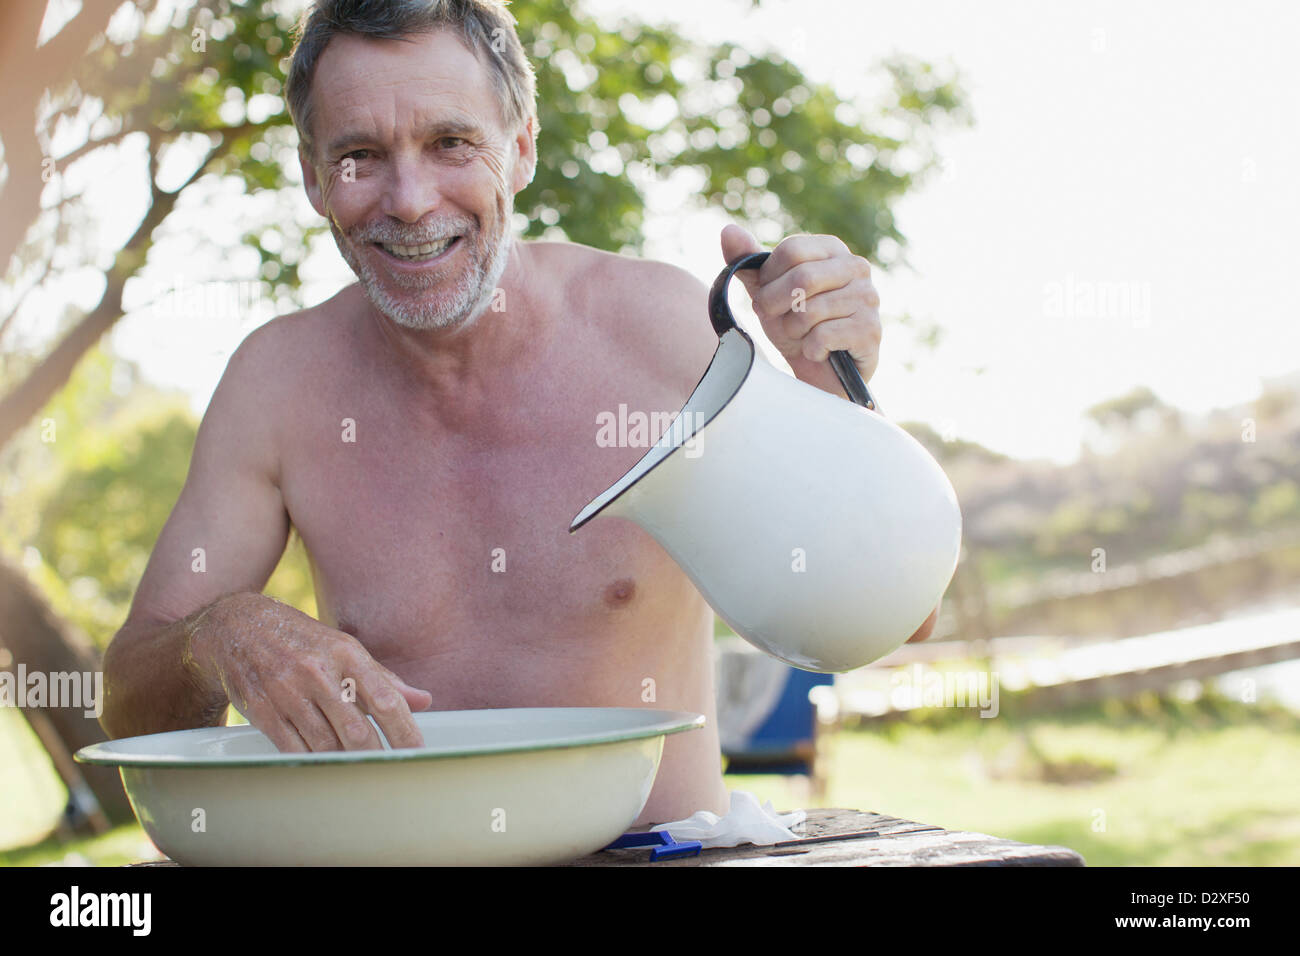 Portrait of smiling man with pitcher washing face in basin at lakeside - Stock Image